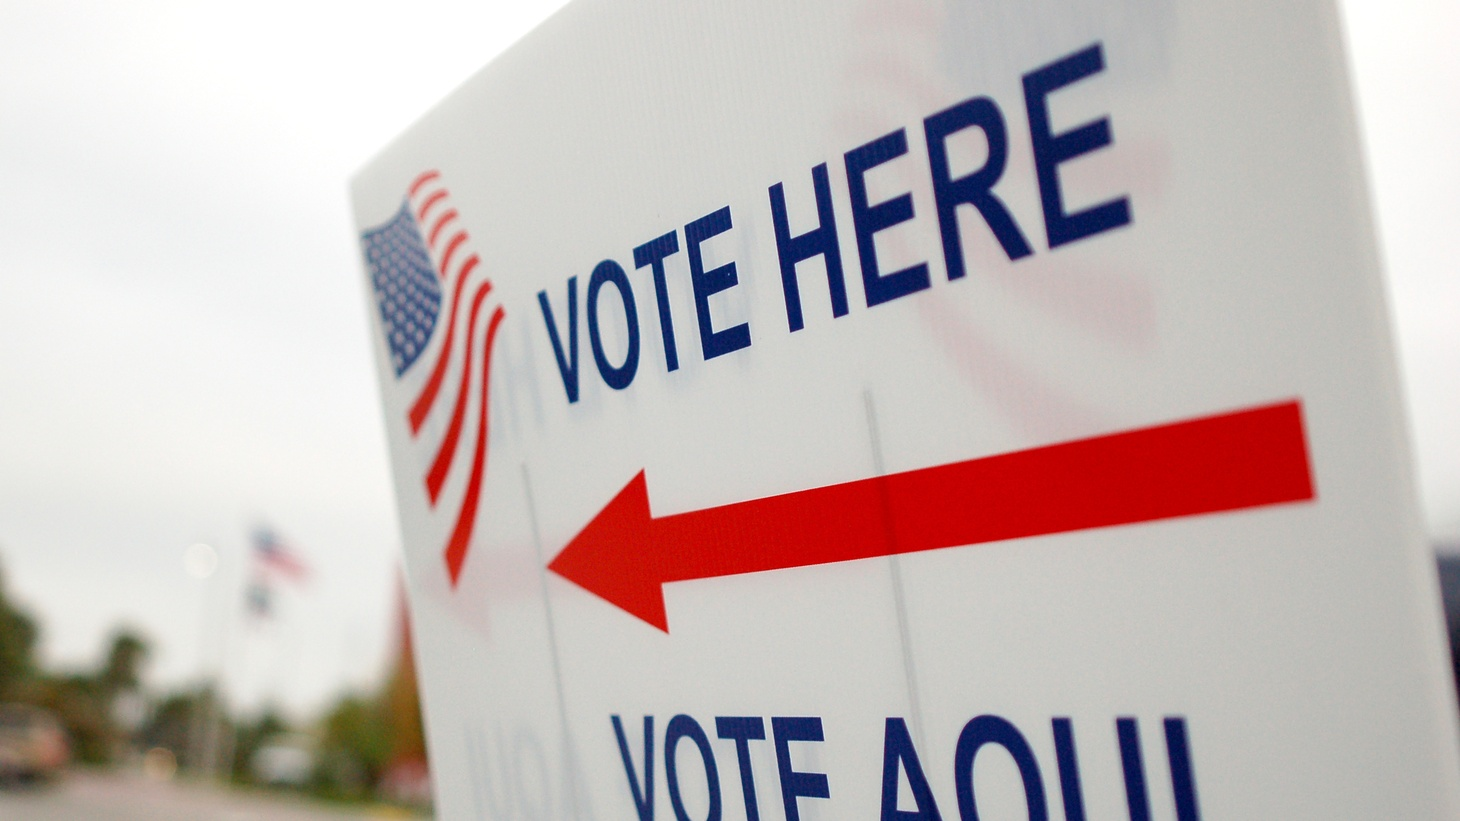 We devote the entire show to Tuesday's midterm elections. We look at the Congressional races in Orange County. How are the candidates doing in the final hours, and what does early voting tell us?